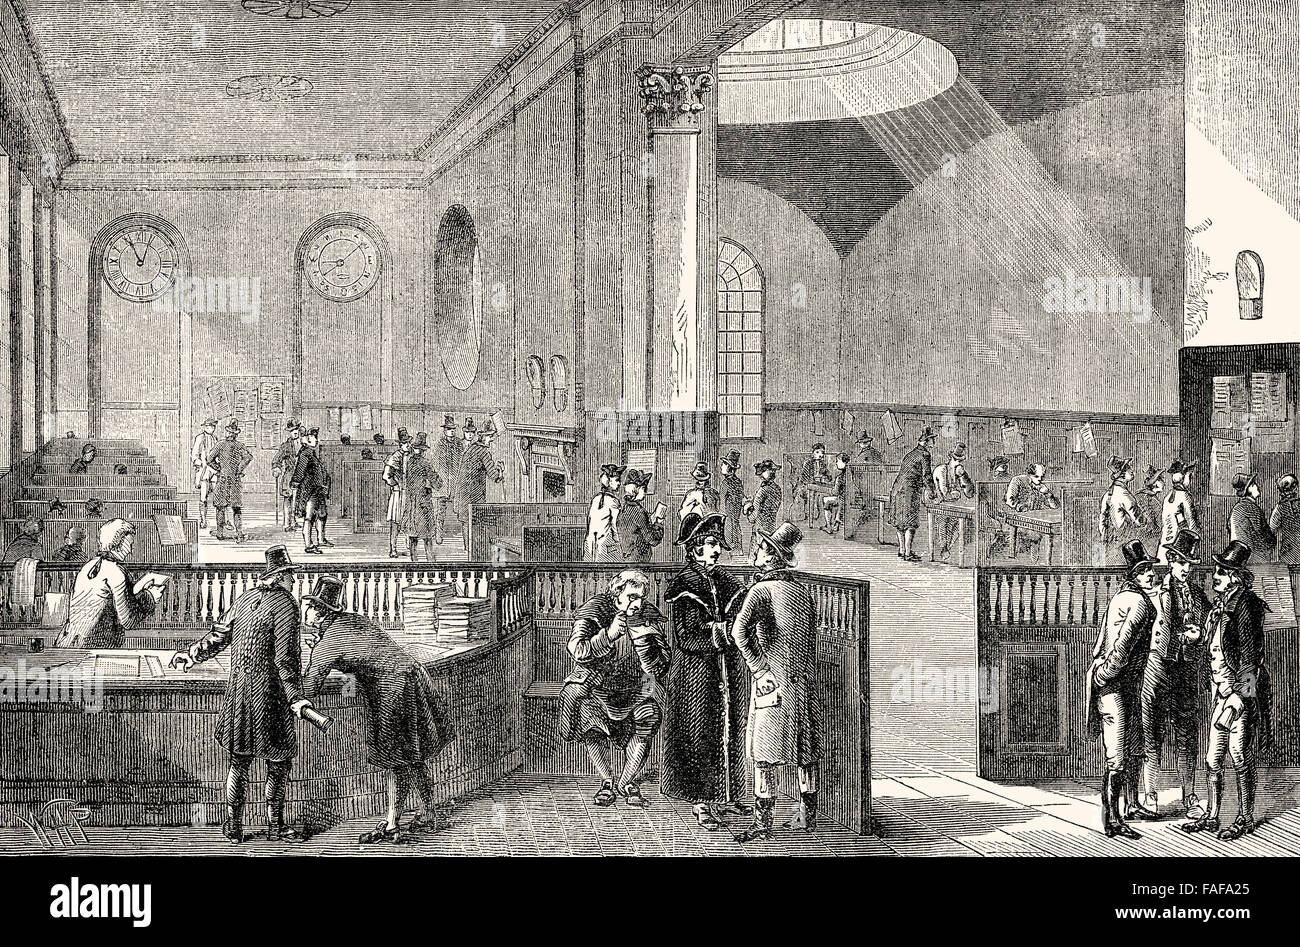 The Subscription Room, early 19th century, Lloyd's of London, an insurance market, City of London - Stock Image